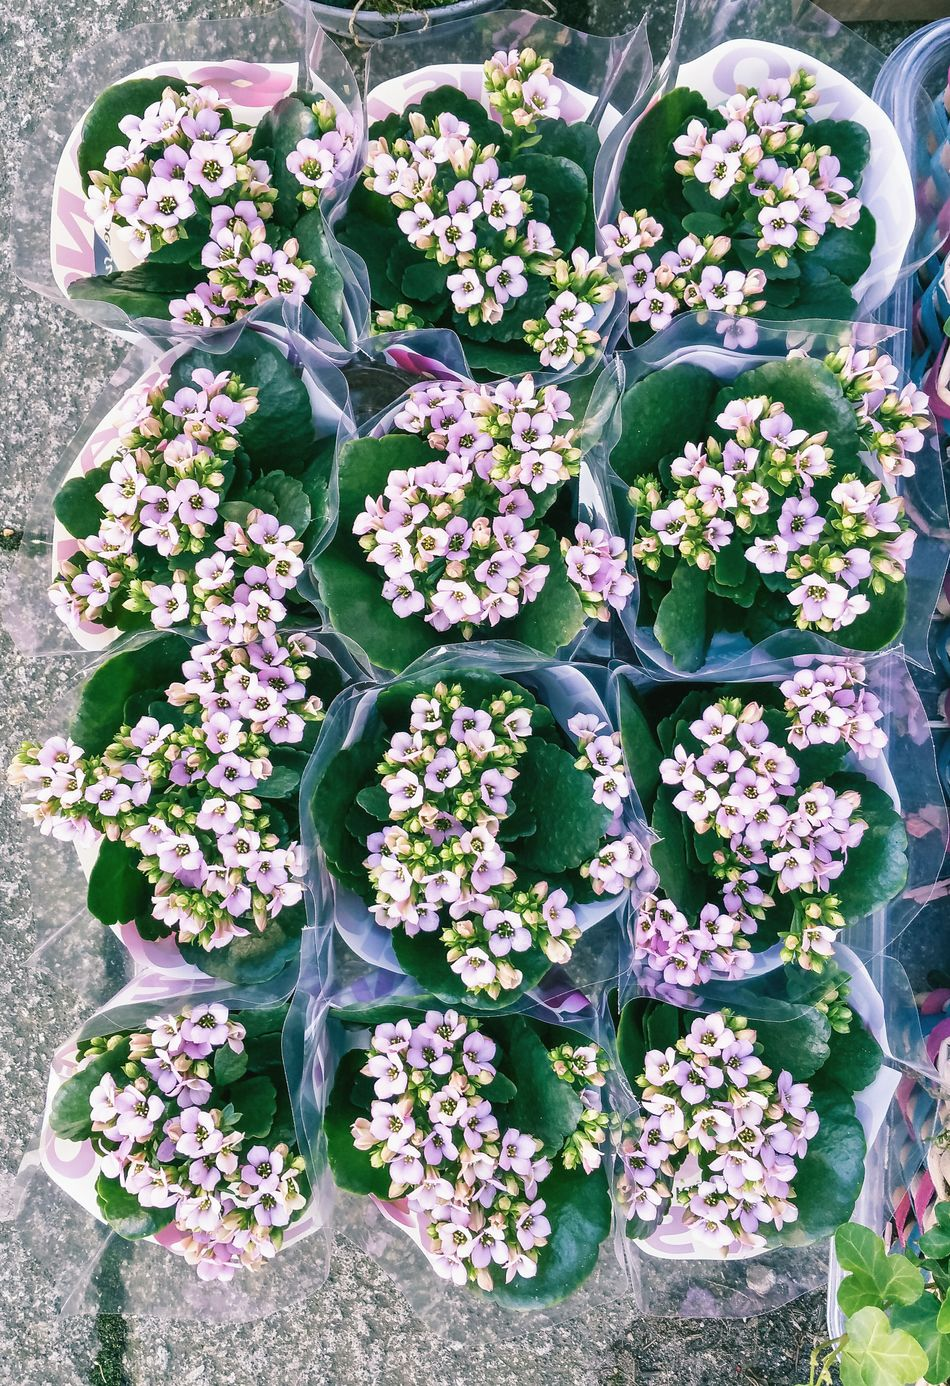 Flowers on the Pavement Flower High Angle View Flying High Nature Growth Plant Freshness Green Color No People Outdoors Day Fragility Close-up Flower Head Kalanchoe Florist Display Flower Market